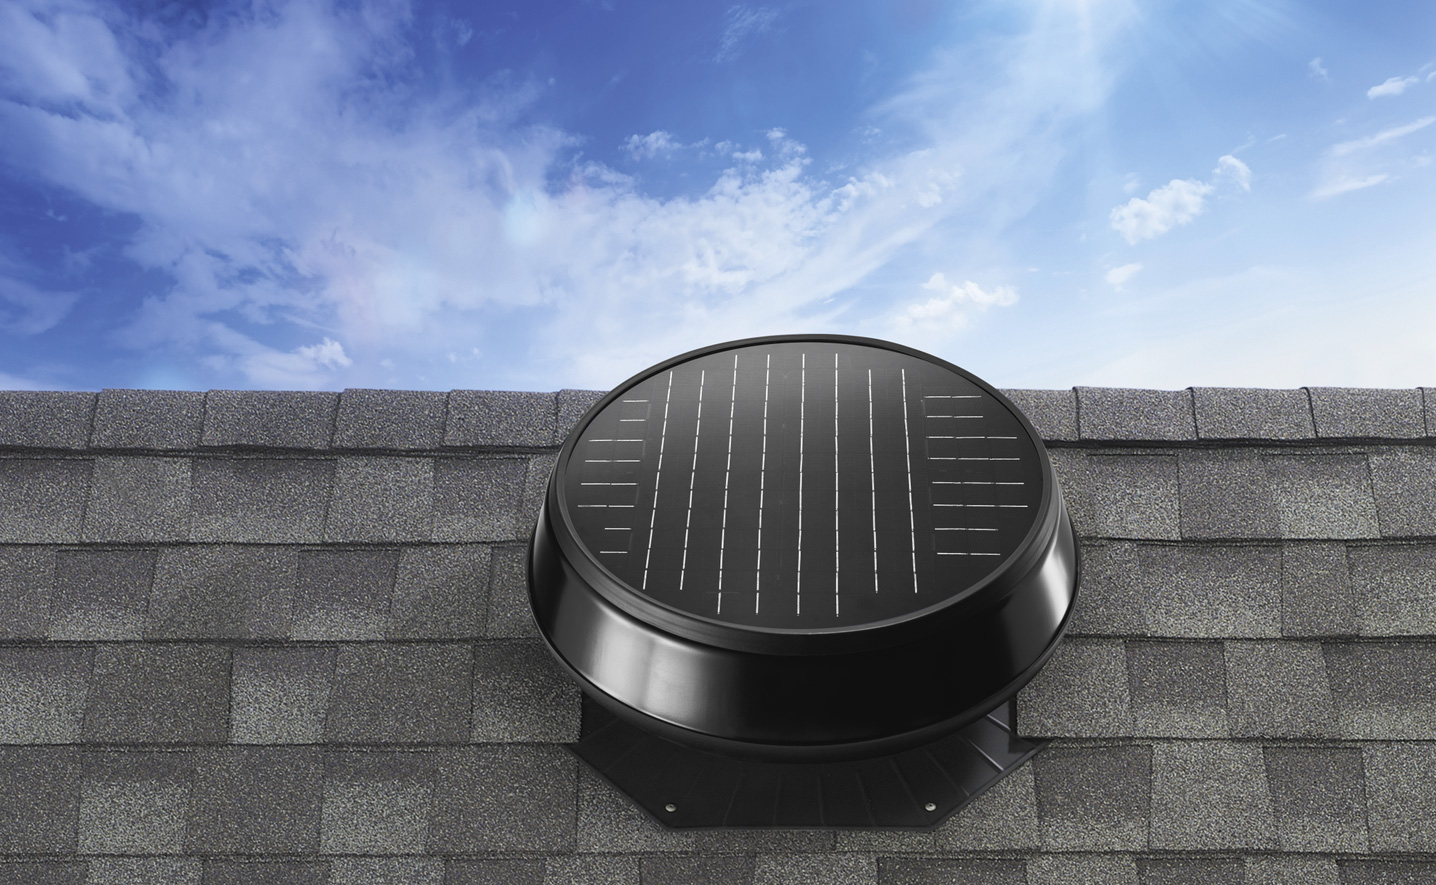 hight resolution of image of a solar powered attic fan